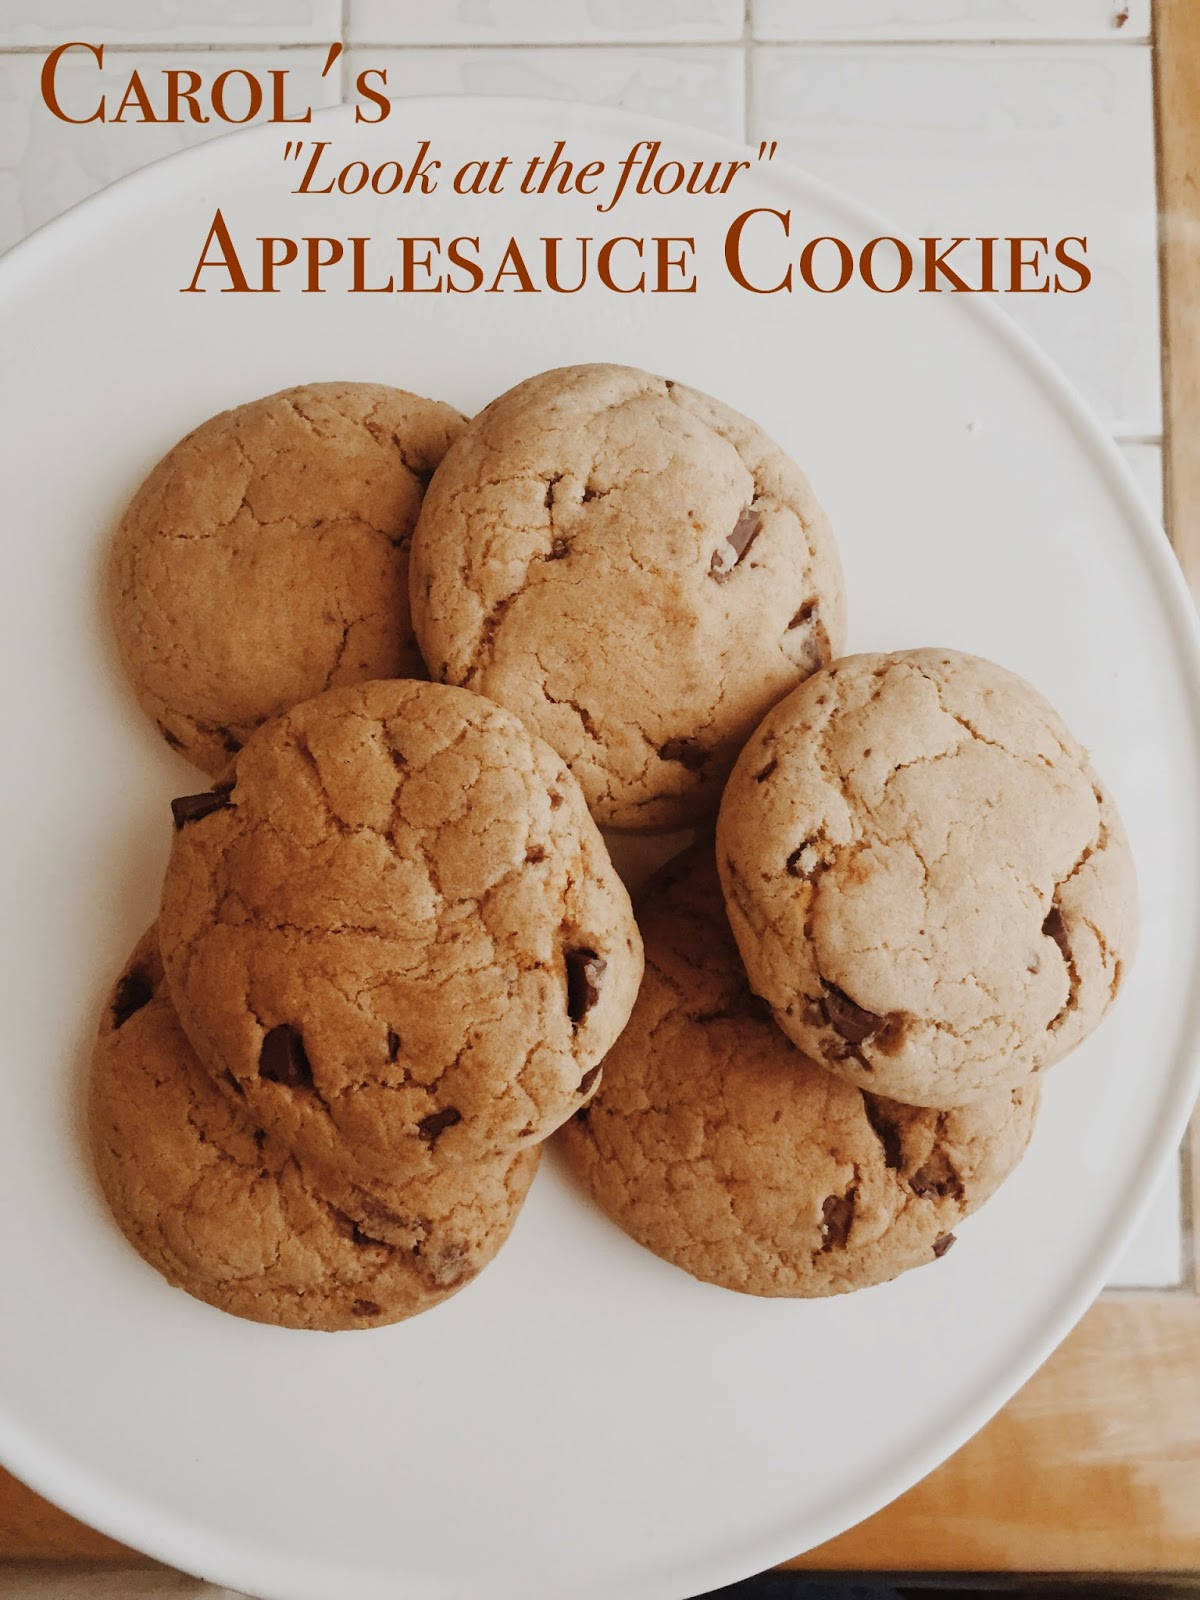 The Walking Dead's Carol's Applesauce Chocolate Cookies